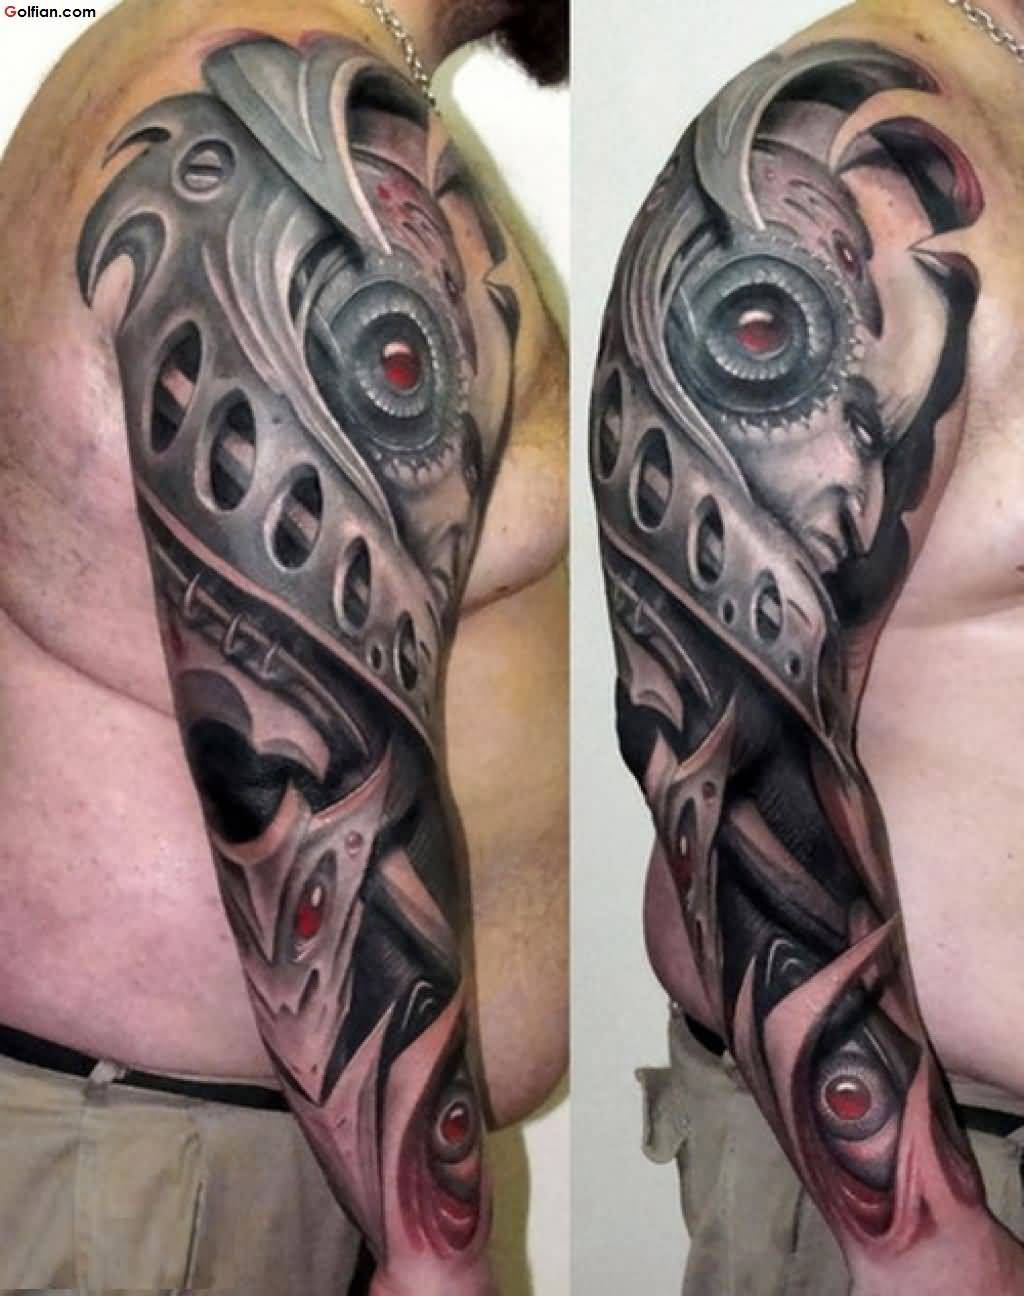 60 Mind Boggling 3D Arm Tattoos Designs And Ideas Ideas And Designs